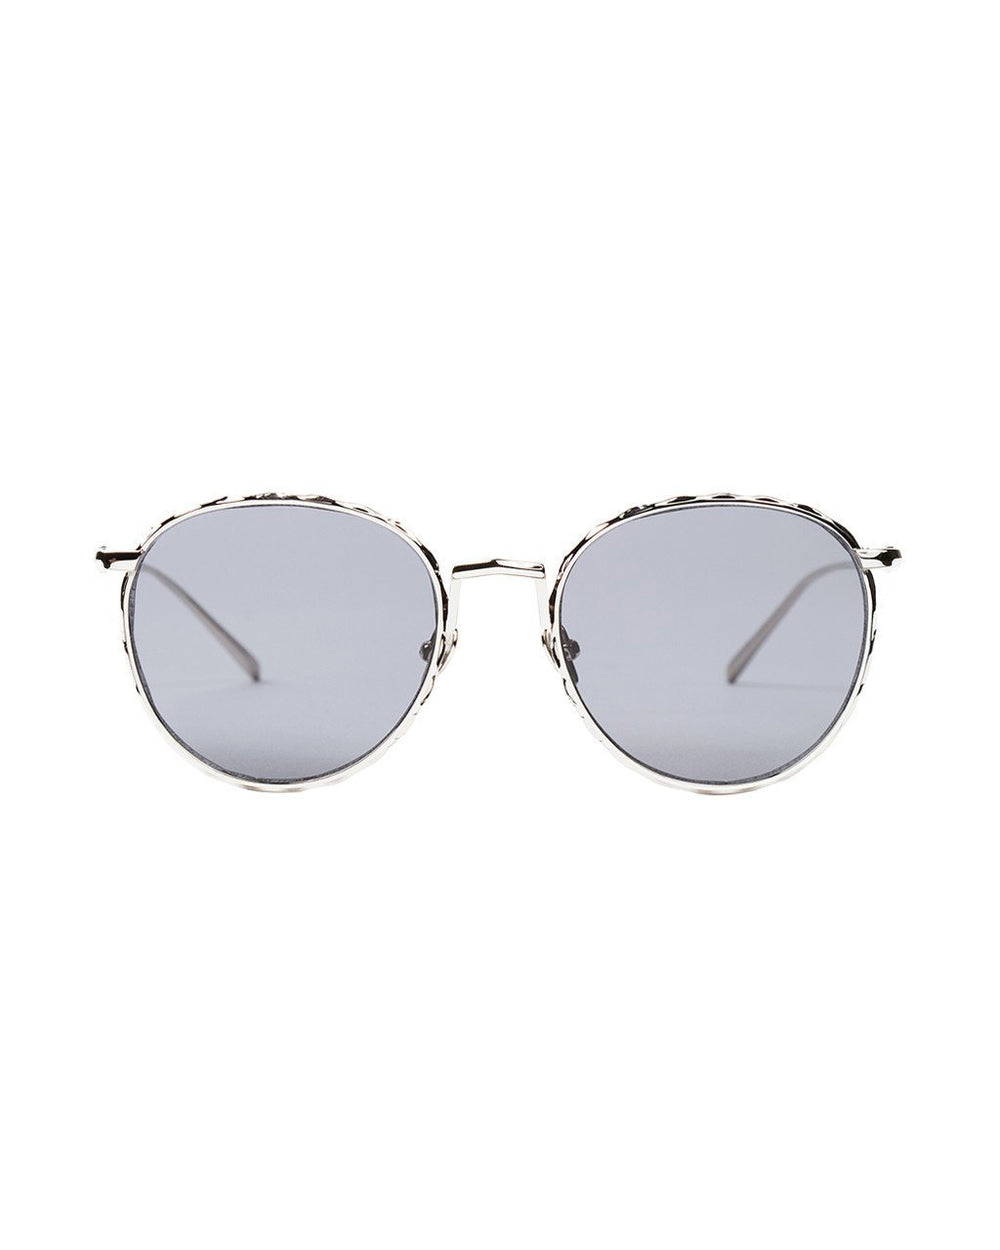 Valley Eyewear Corpus - Gloss Silver is a premium handcrafted sunglass.